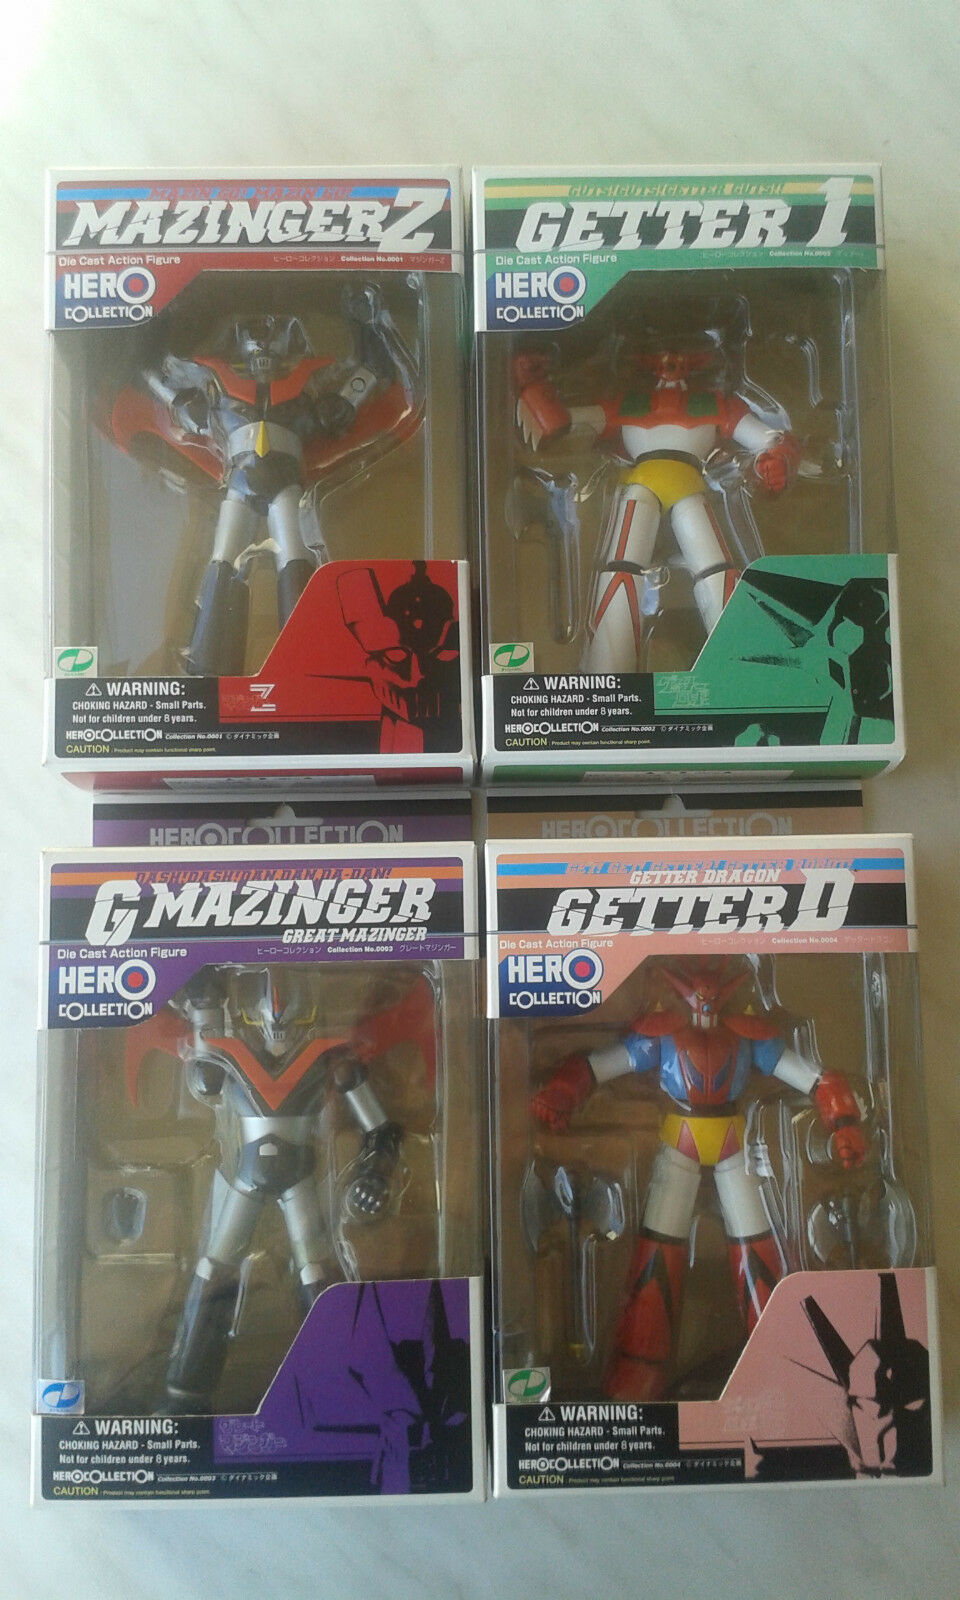 HERO COLLECTION,COMPLETA,MAZINGER,GETTER,DIECAST FIG ROBOT YAMATO,GO NAGAI,NUOVI